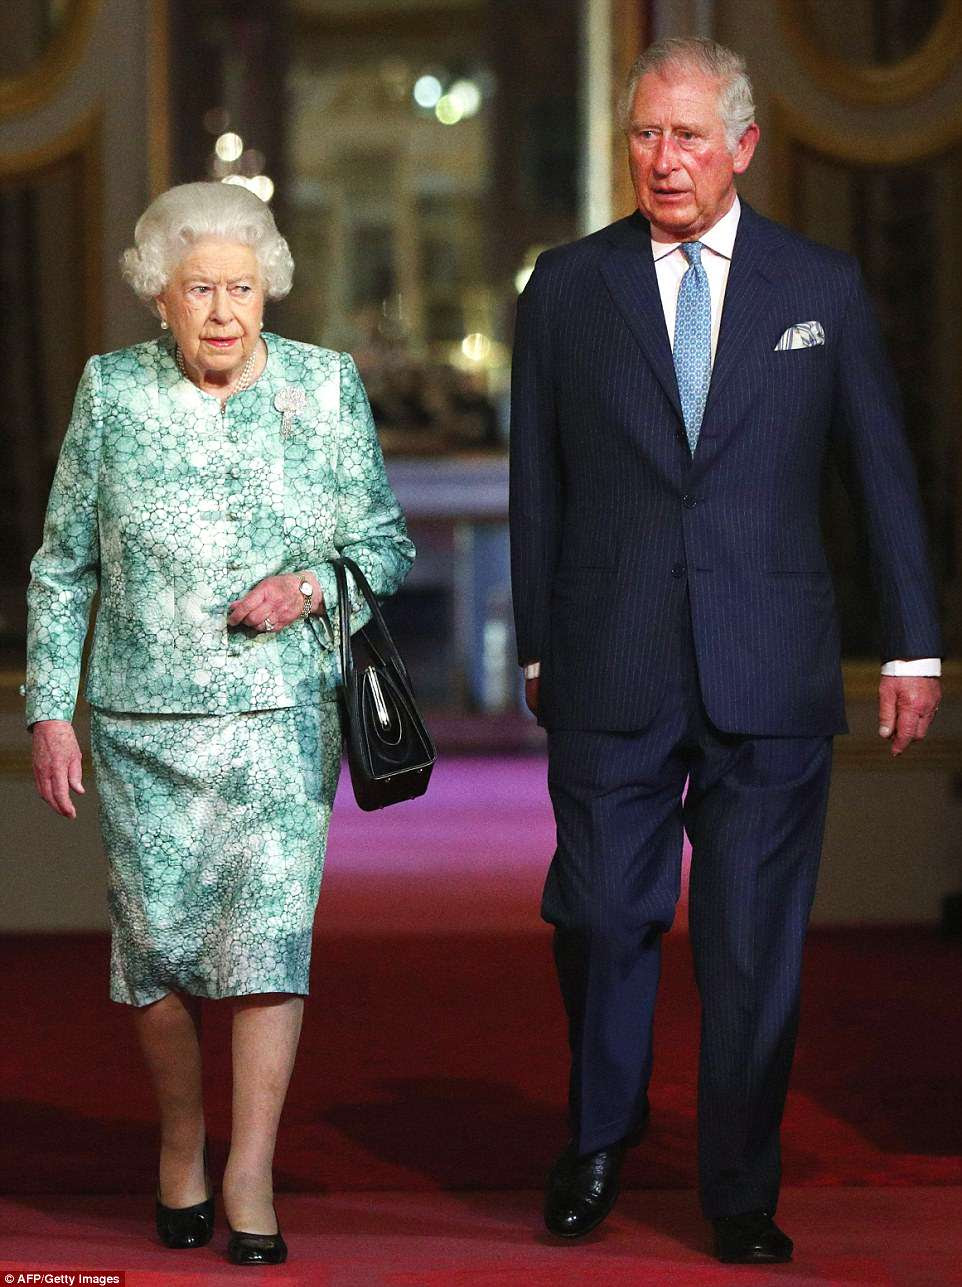 The Queen and Prince Charles welcomed dozens of world leaders to feast at Buckingham Palace for a state dinner on Thursday evening. Pictured: The two earlier in the day